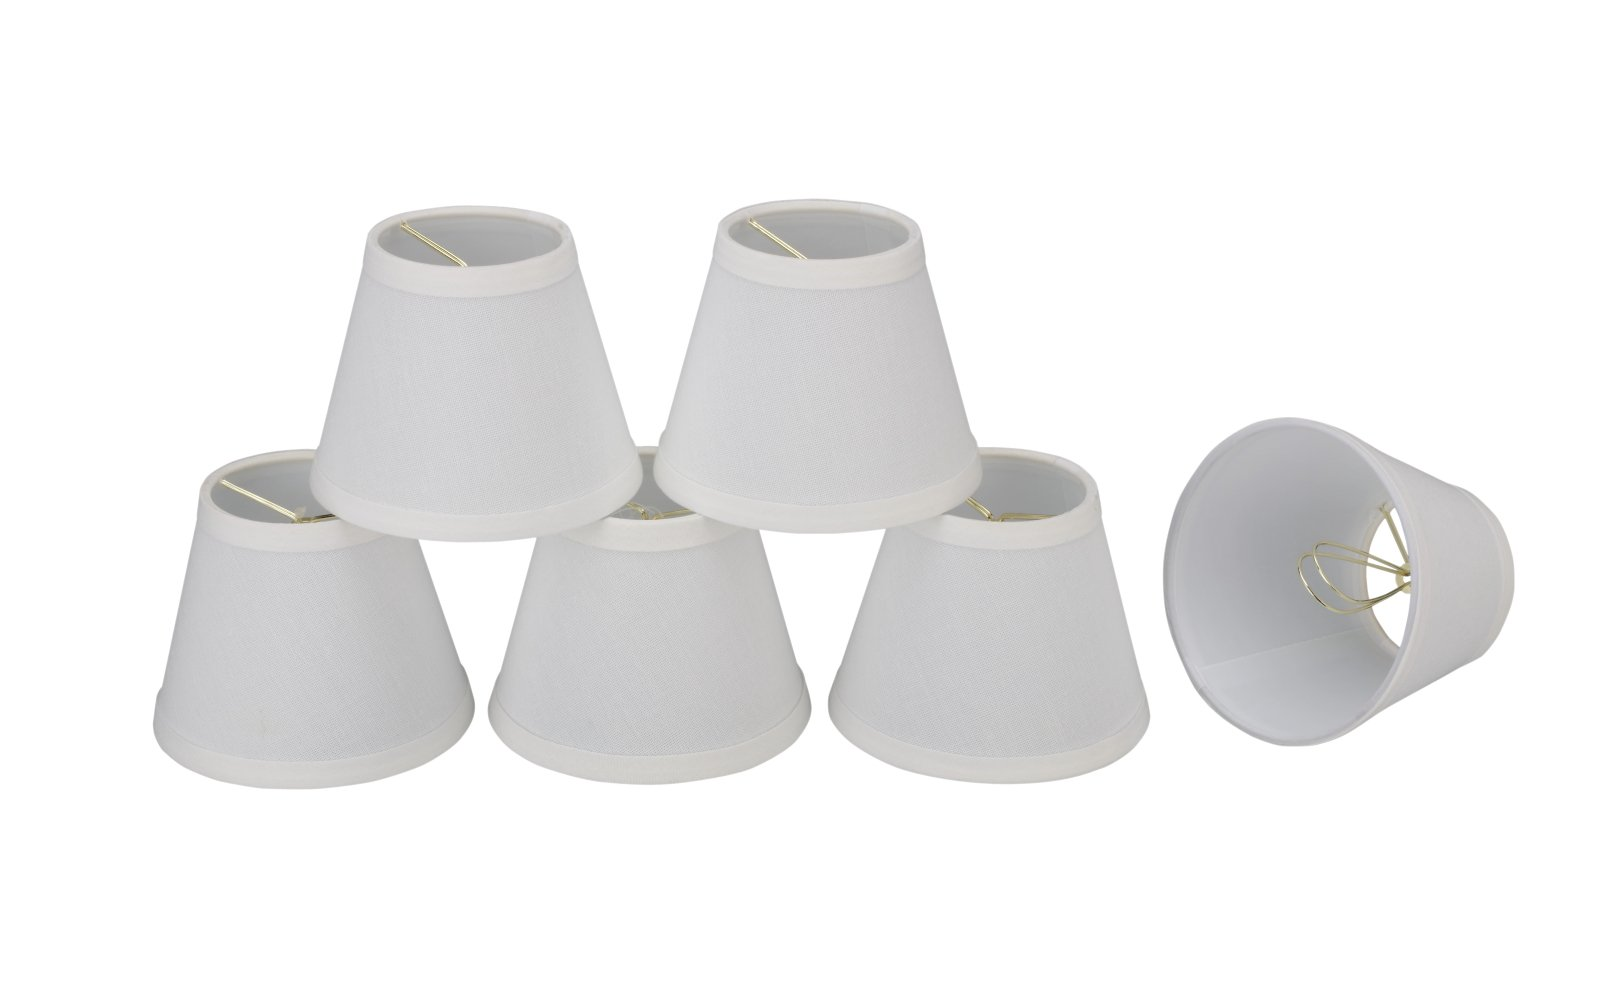 32060-6 Small Hardback Empire Shape Chandelier Clip-On Lamp Shade Set (6 Pack), Transitional Design in White, 5'' bottom width (3'' x 5'' x 4'') by Aspen Creative